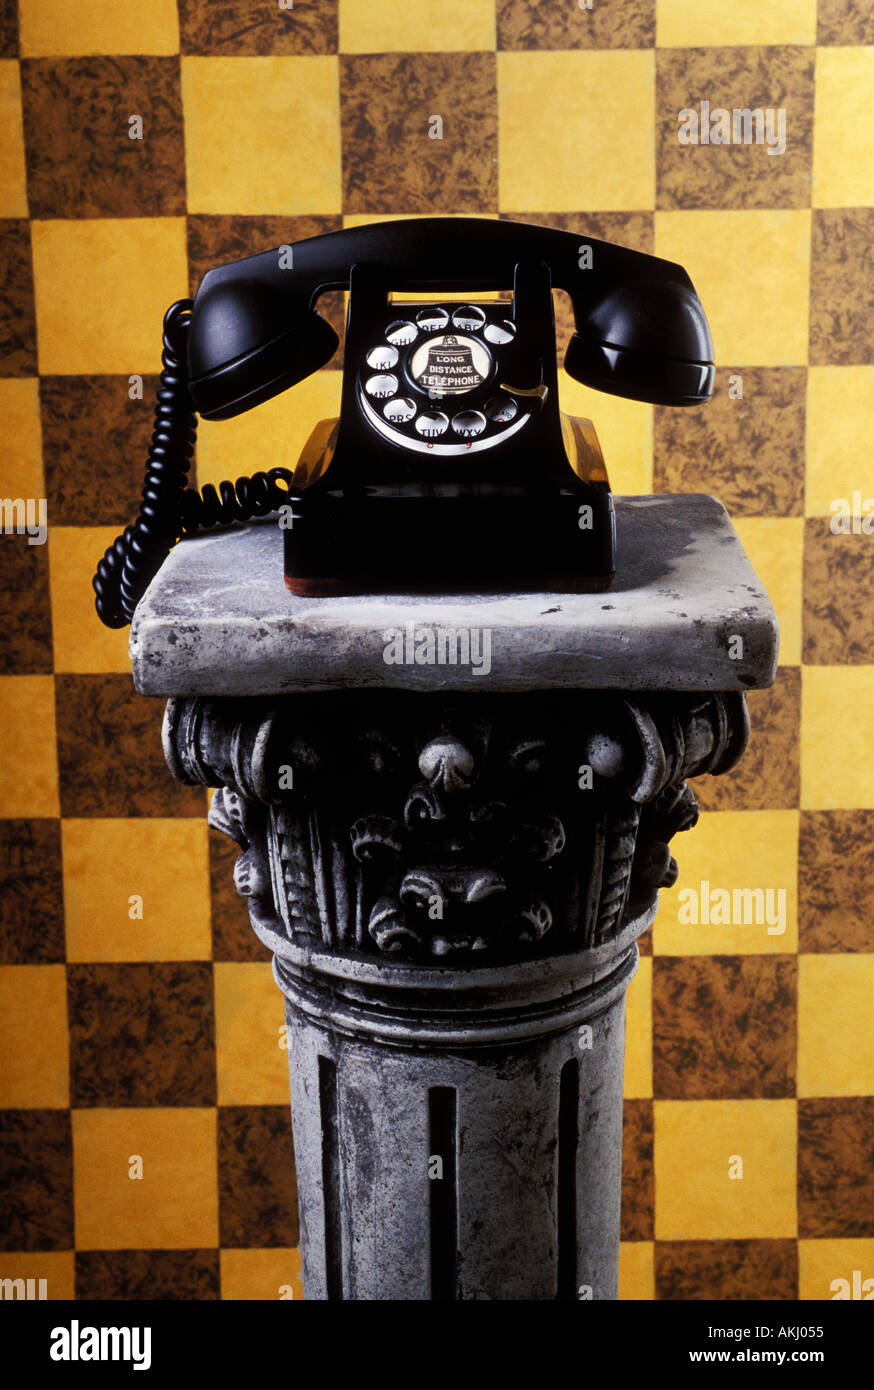 Old telephone on pedestal - Stock Image